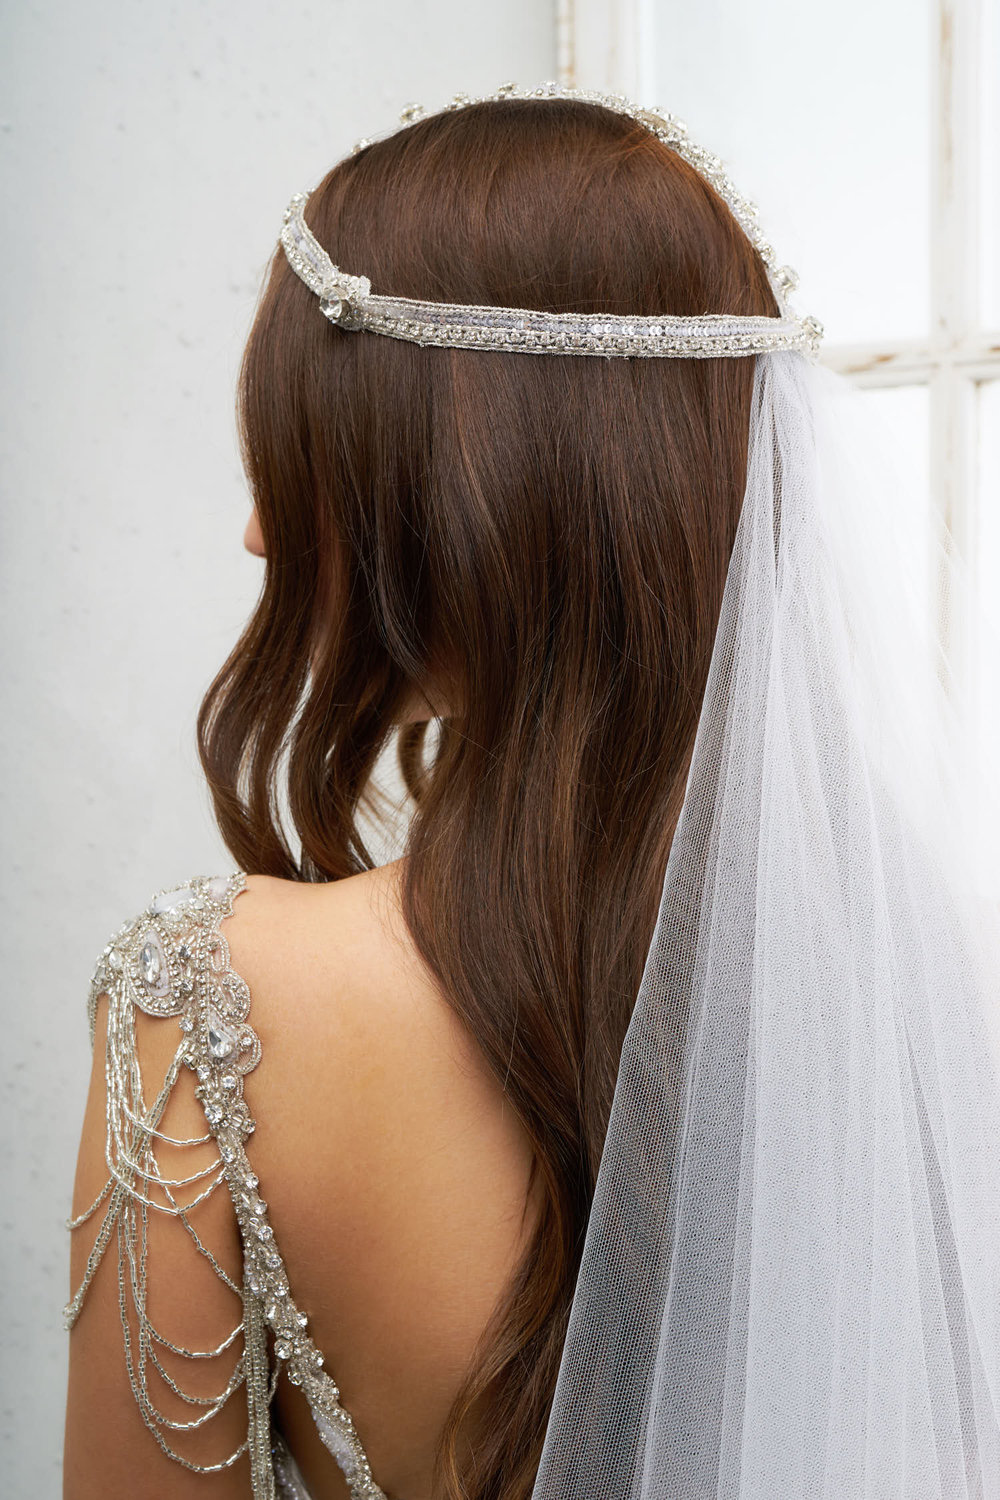 The Isla Headpiece styled with the Zara Veil (Chapel Length without Blusher)